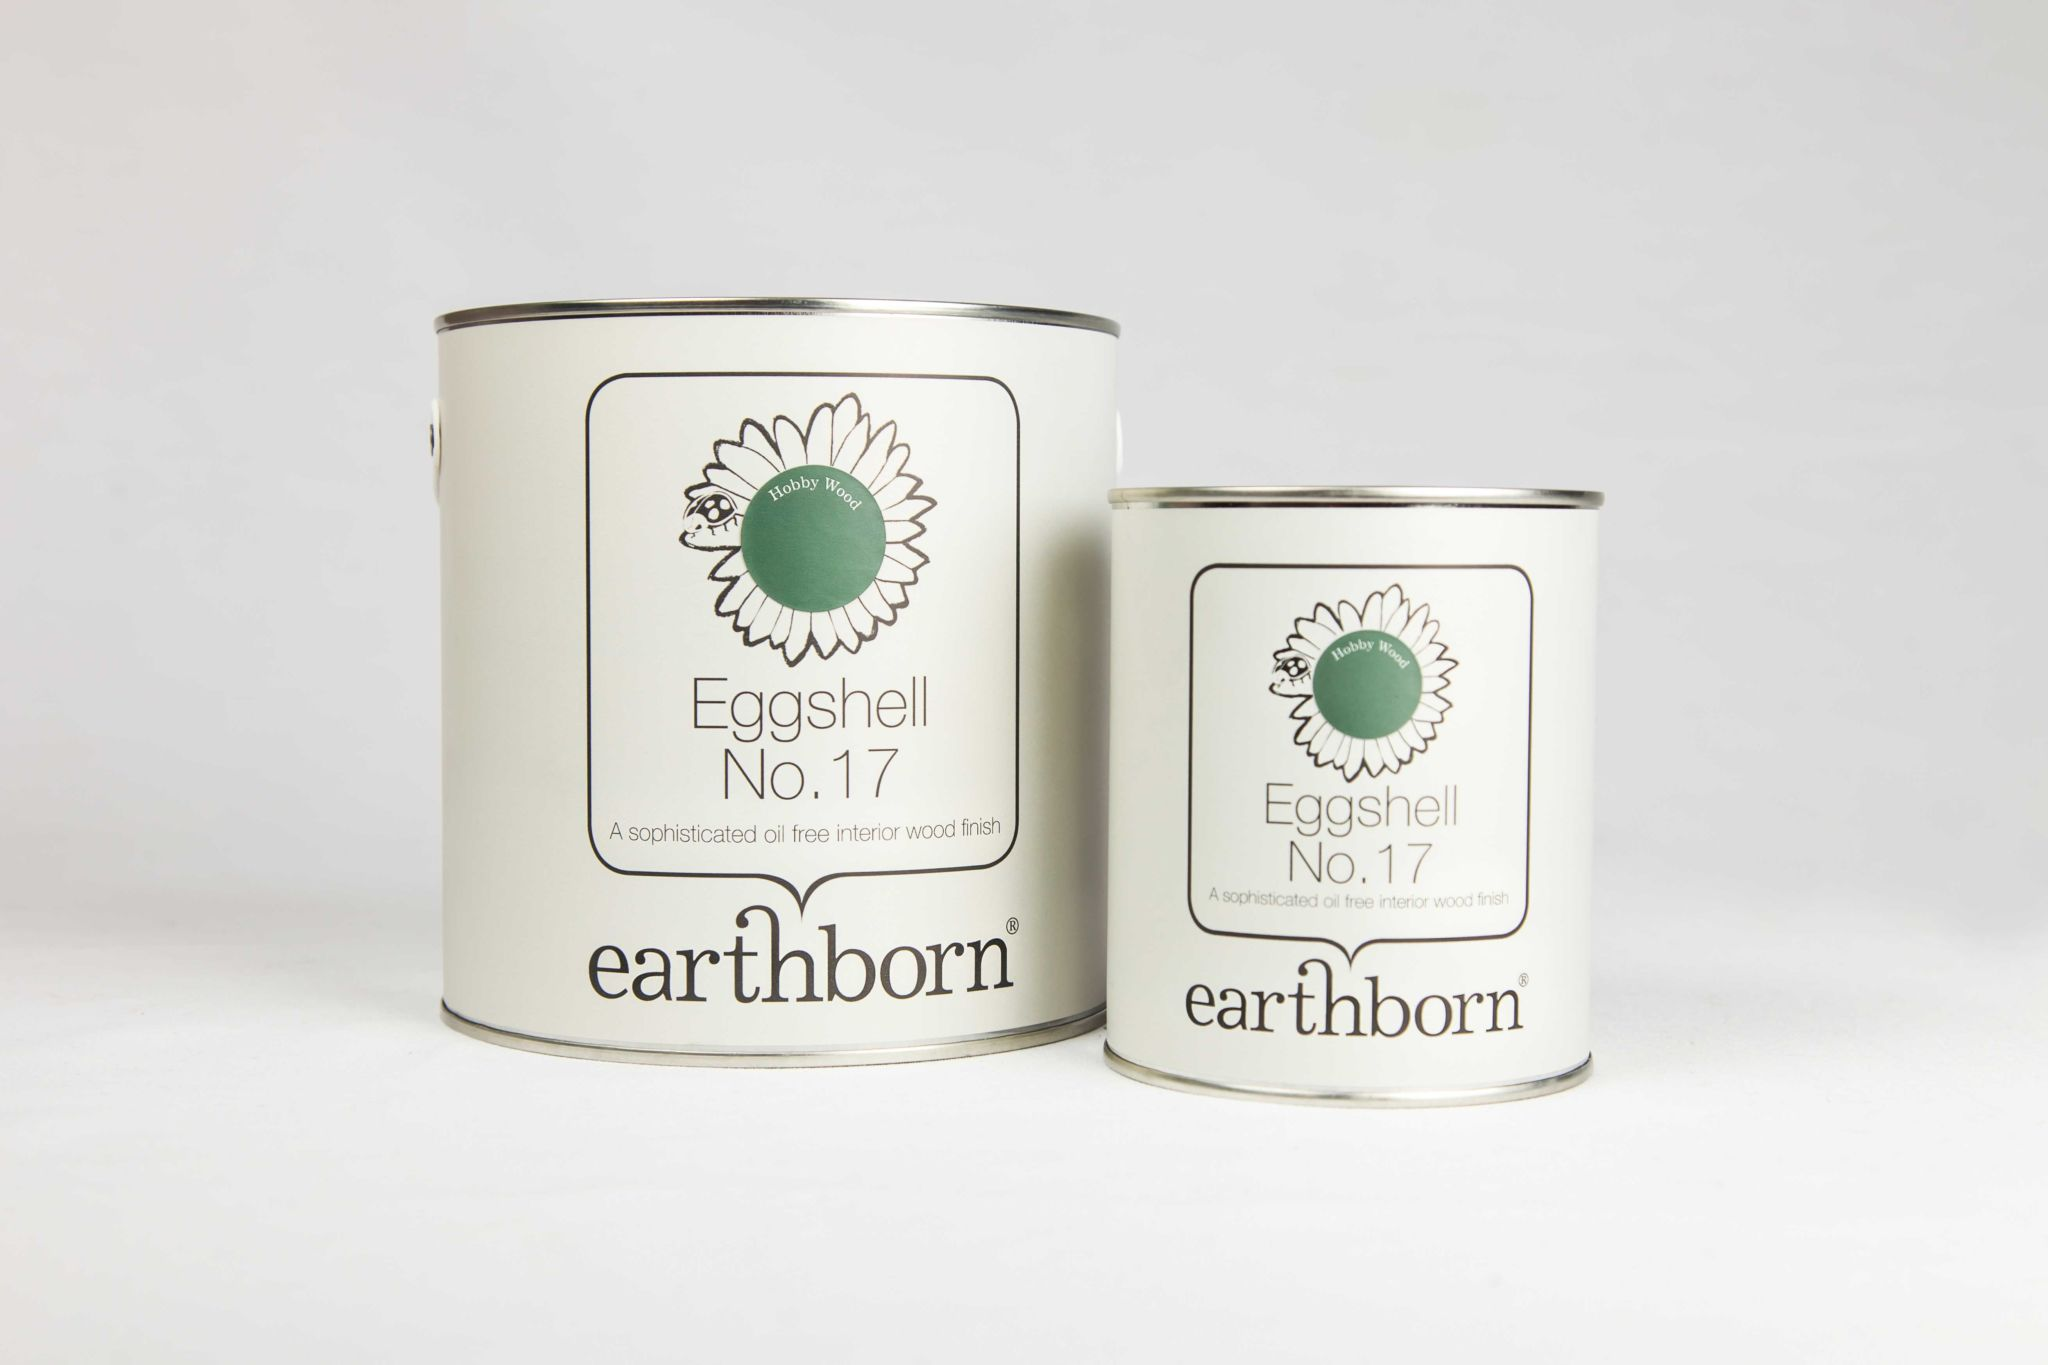 Earthborn Eggshell No. 17 is a hardwearing, baby-safe paint suitable for children's cots and toys